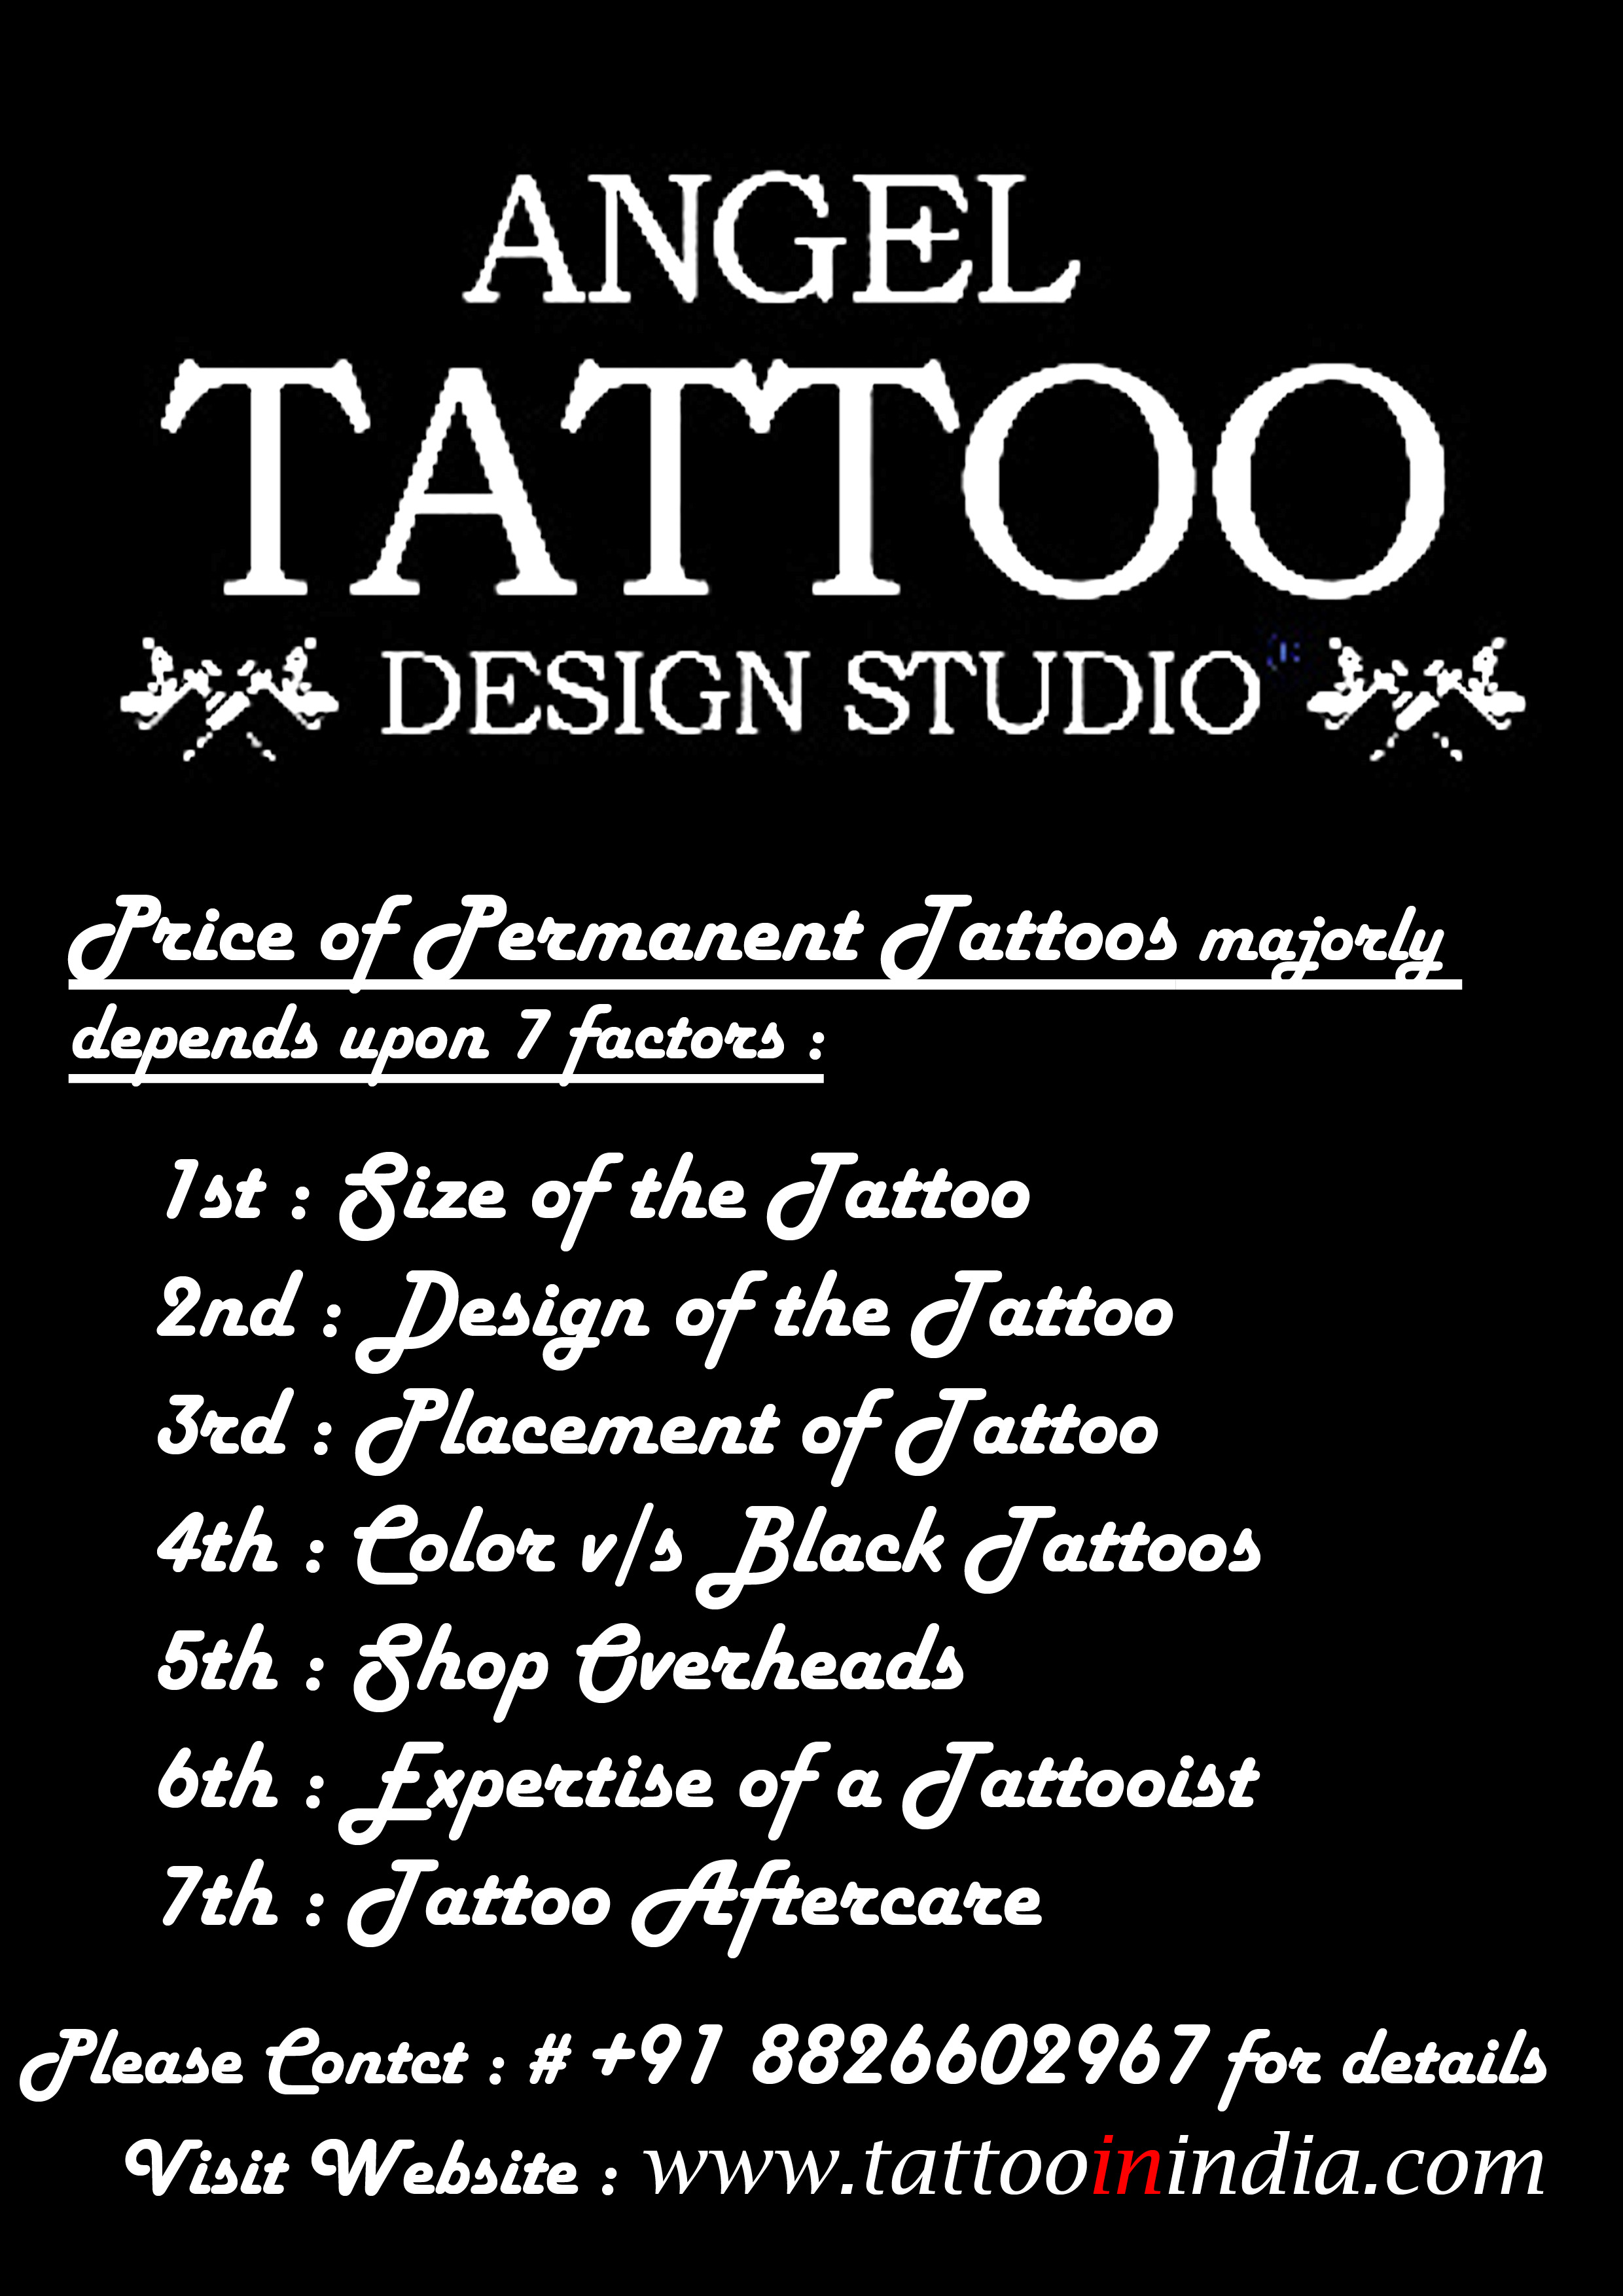 Cost Of Permanent Tattoo In Black / Color, Price Of